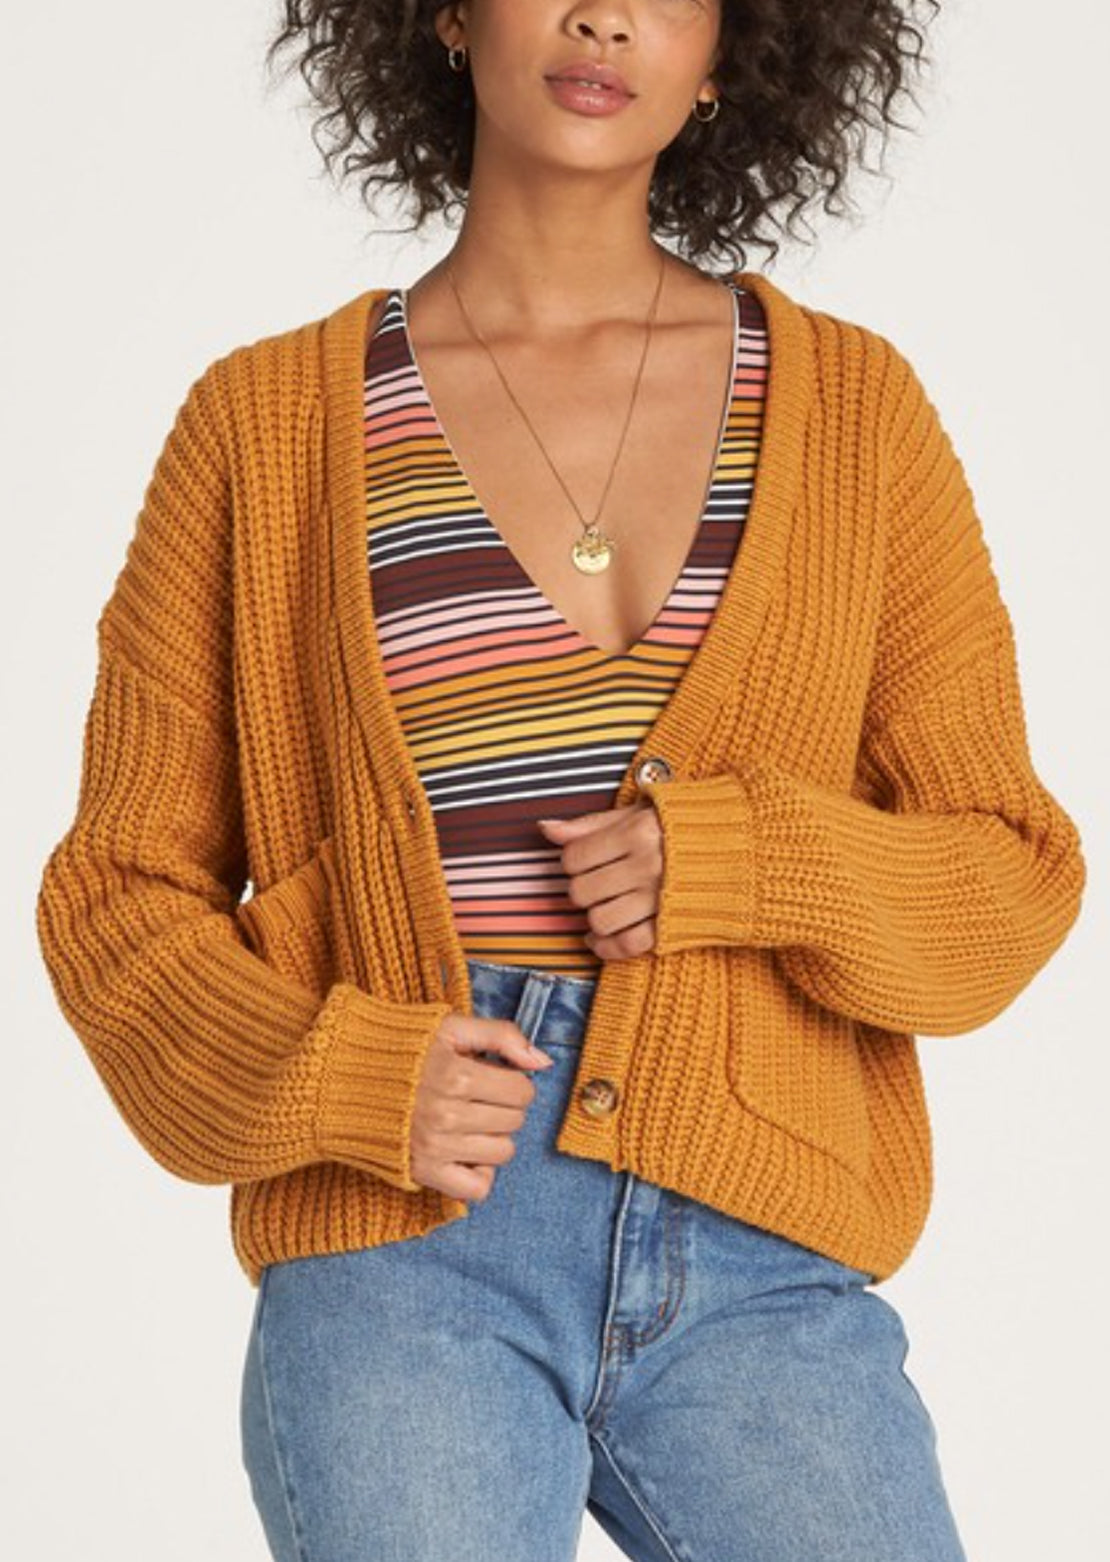 Billabong Women's Cali Nights Sweater Golden Haze